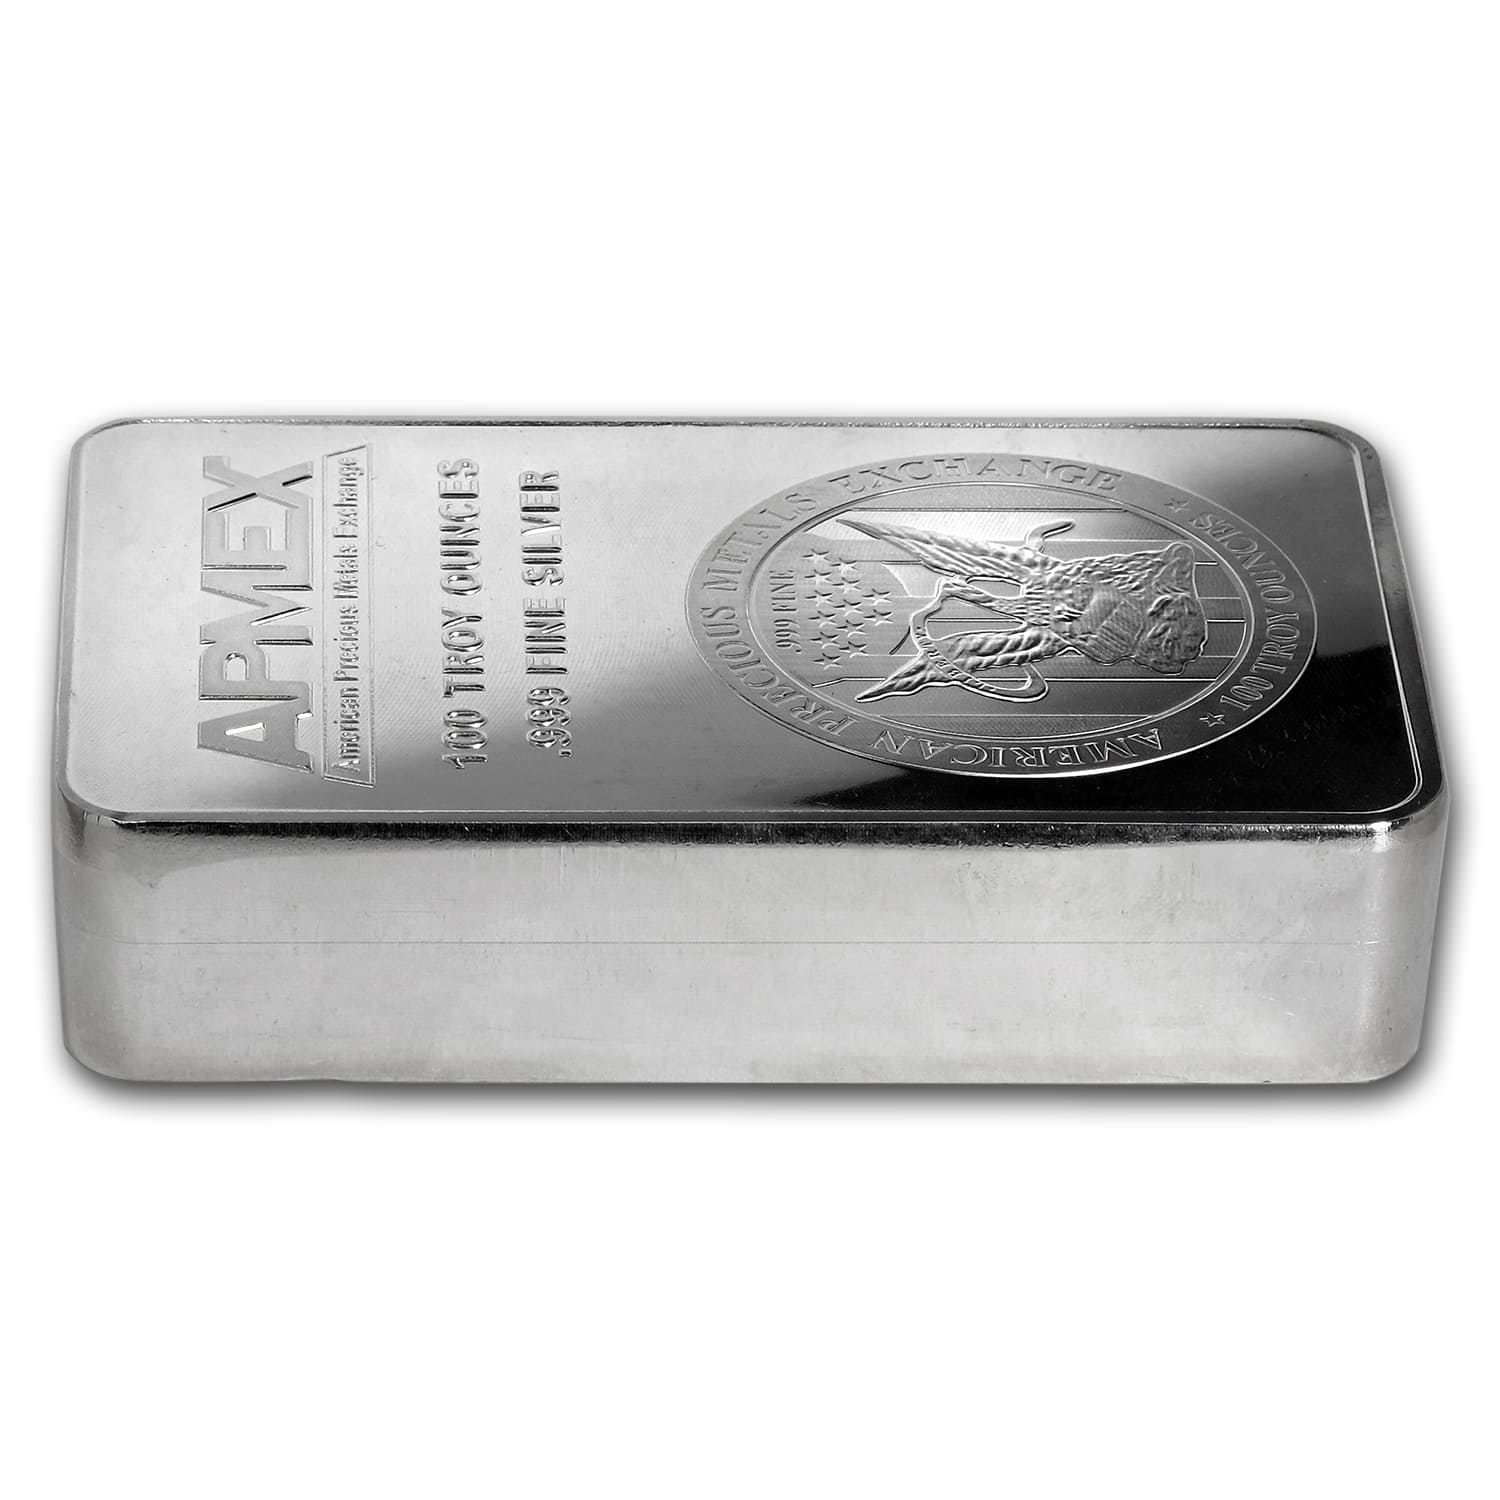 100 oz Silver Bars - APMEX (Struck)